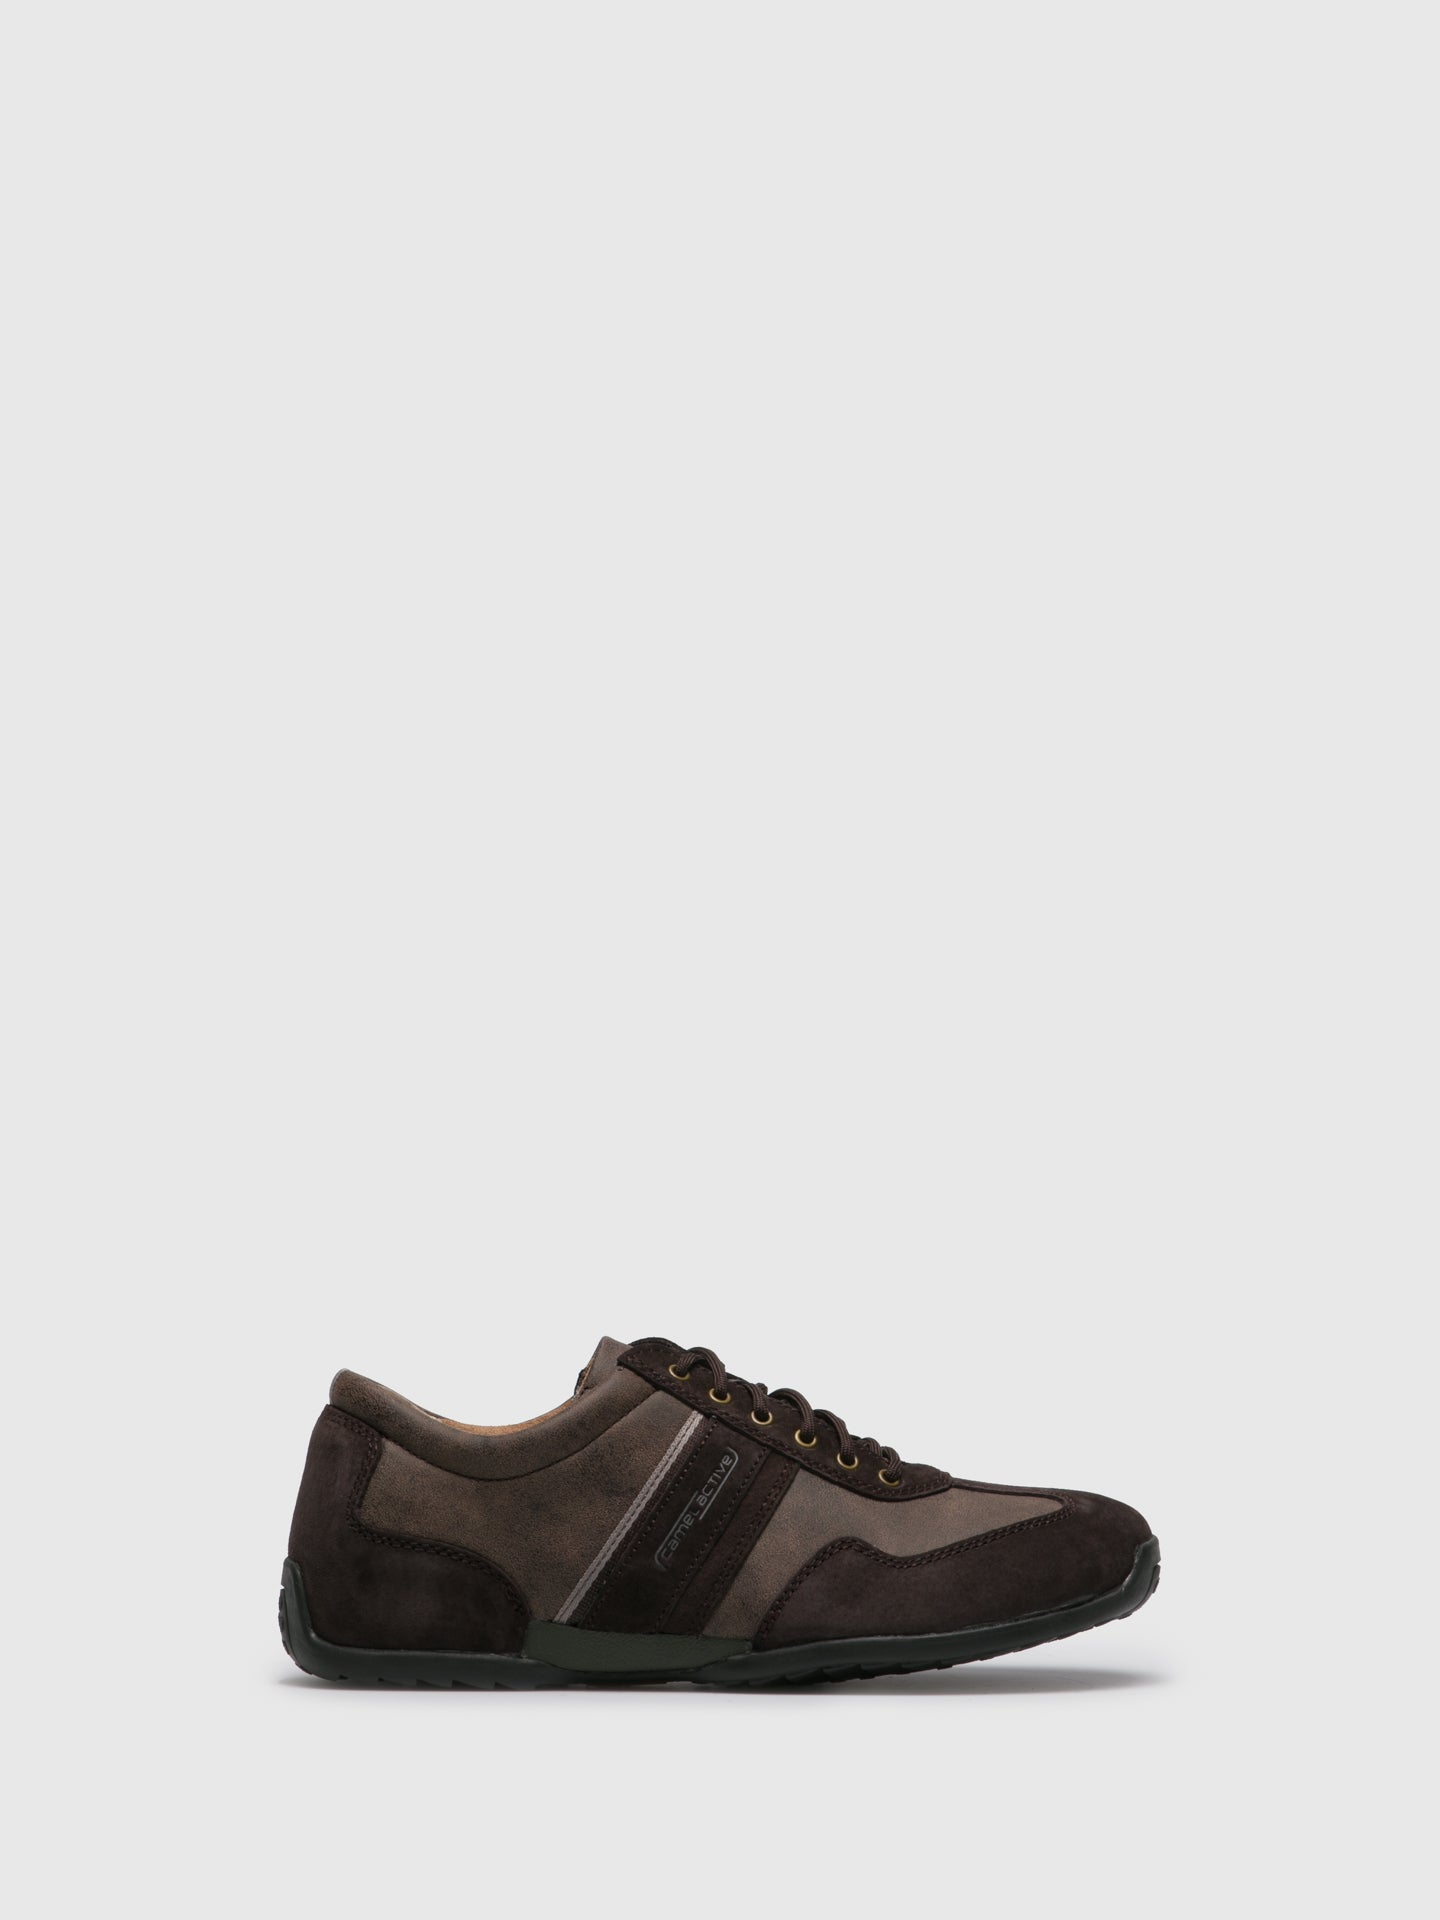 Camel Active Brown Lace-up Shoes